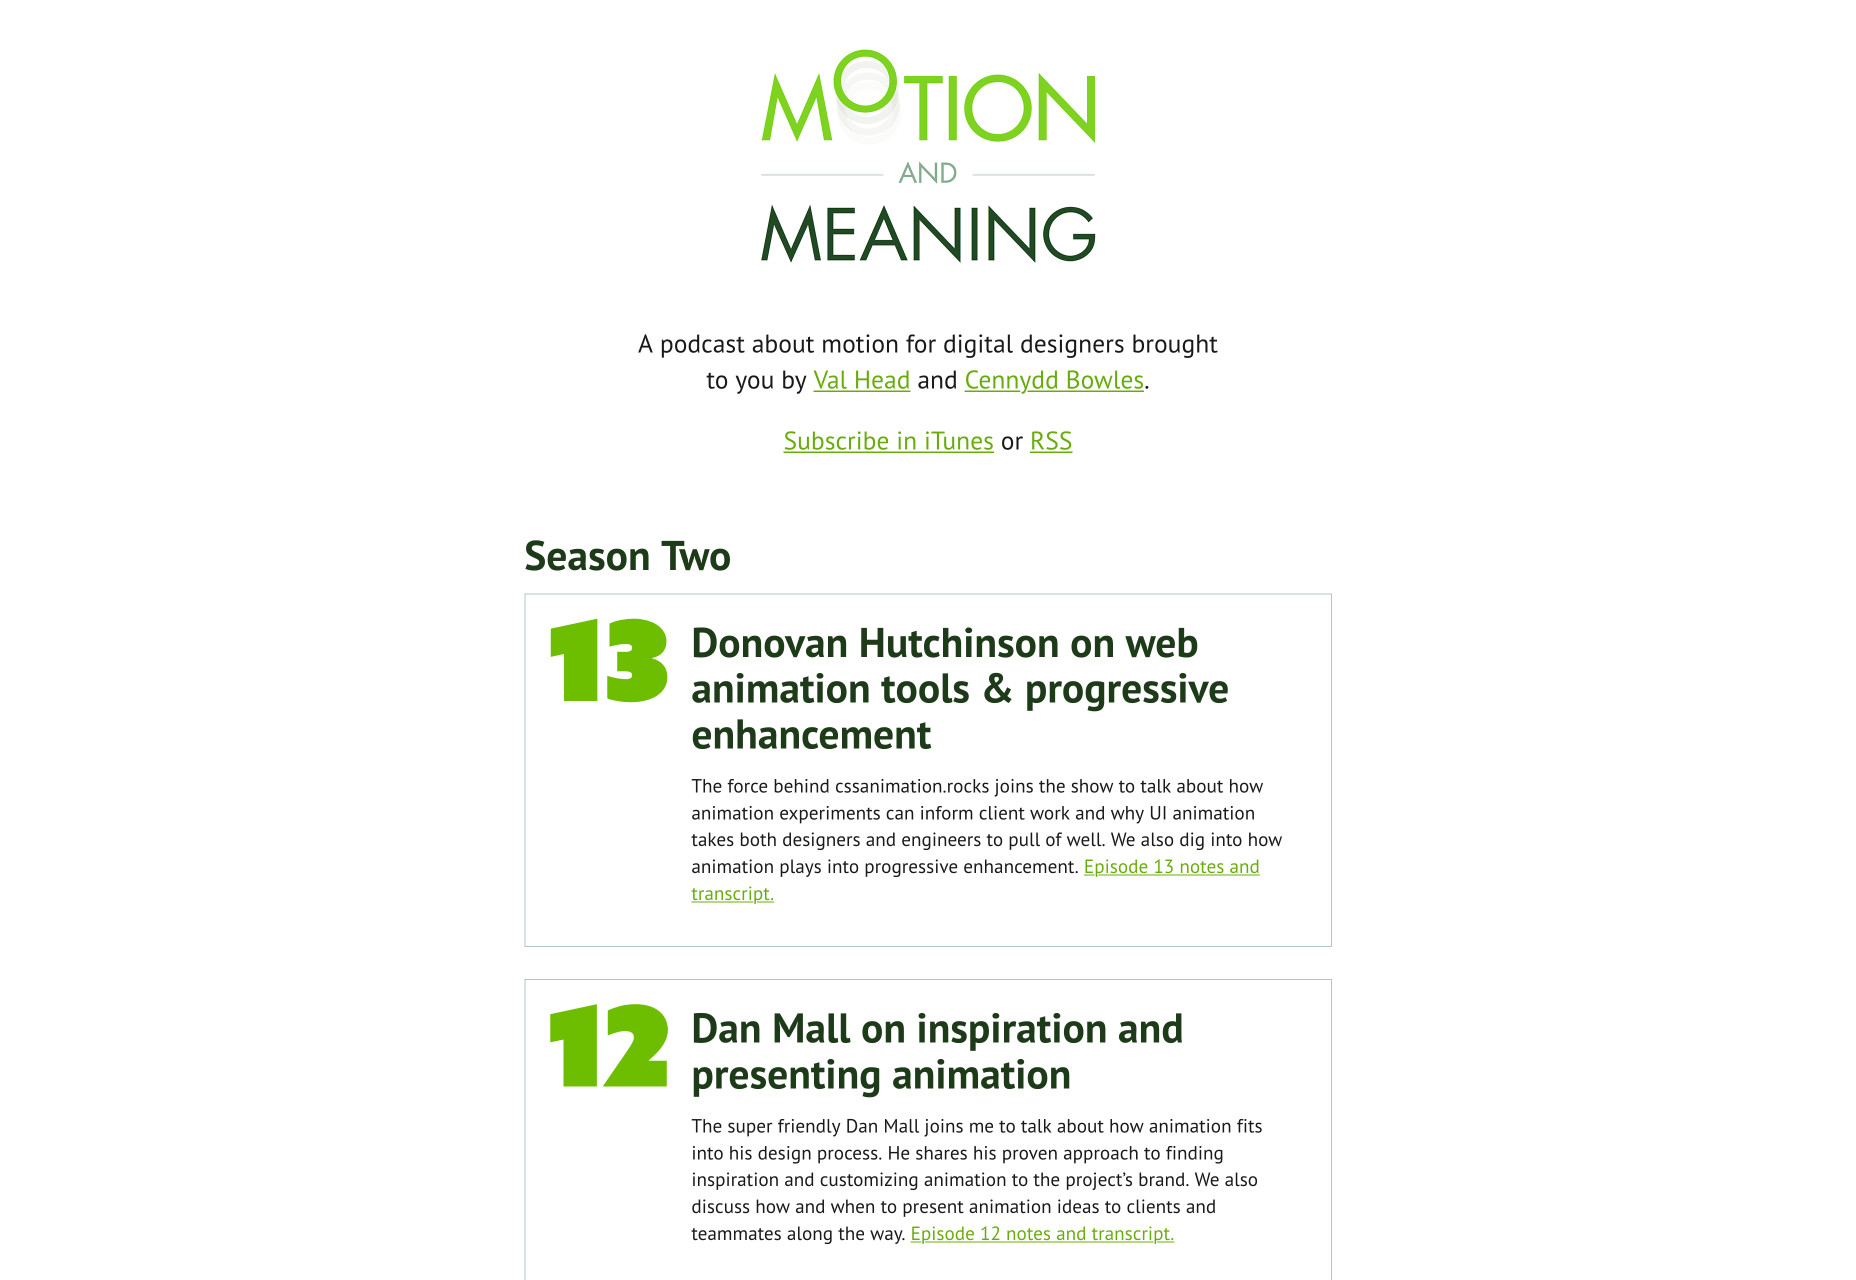 motionandmeaning